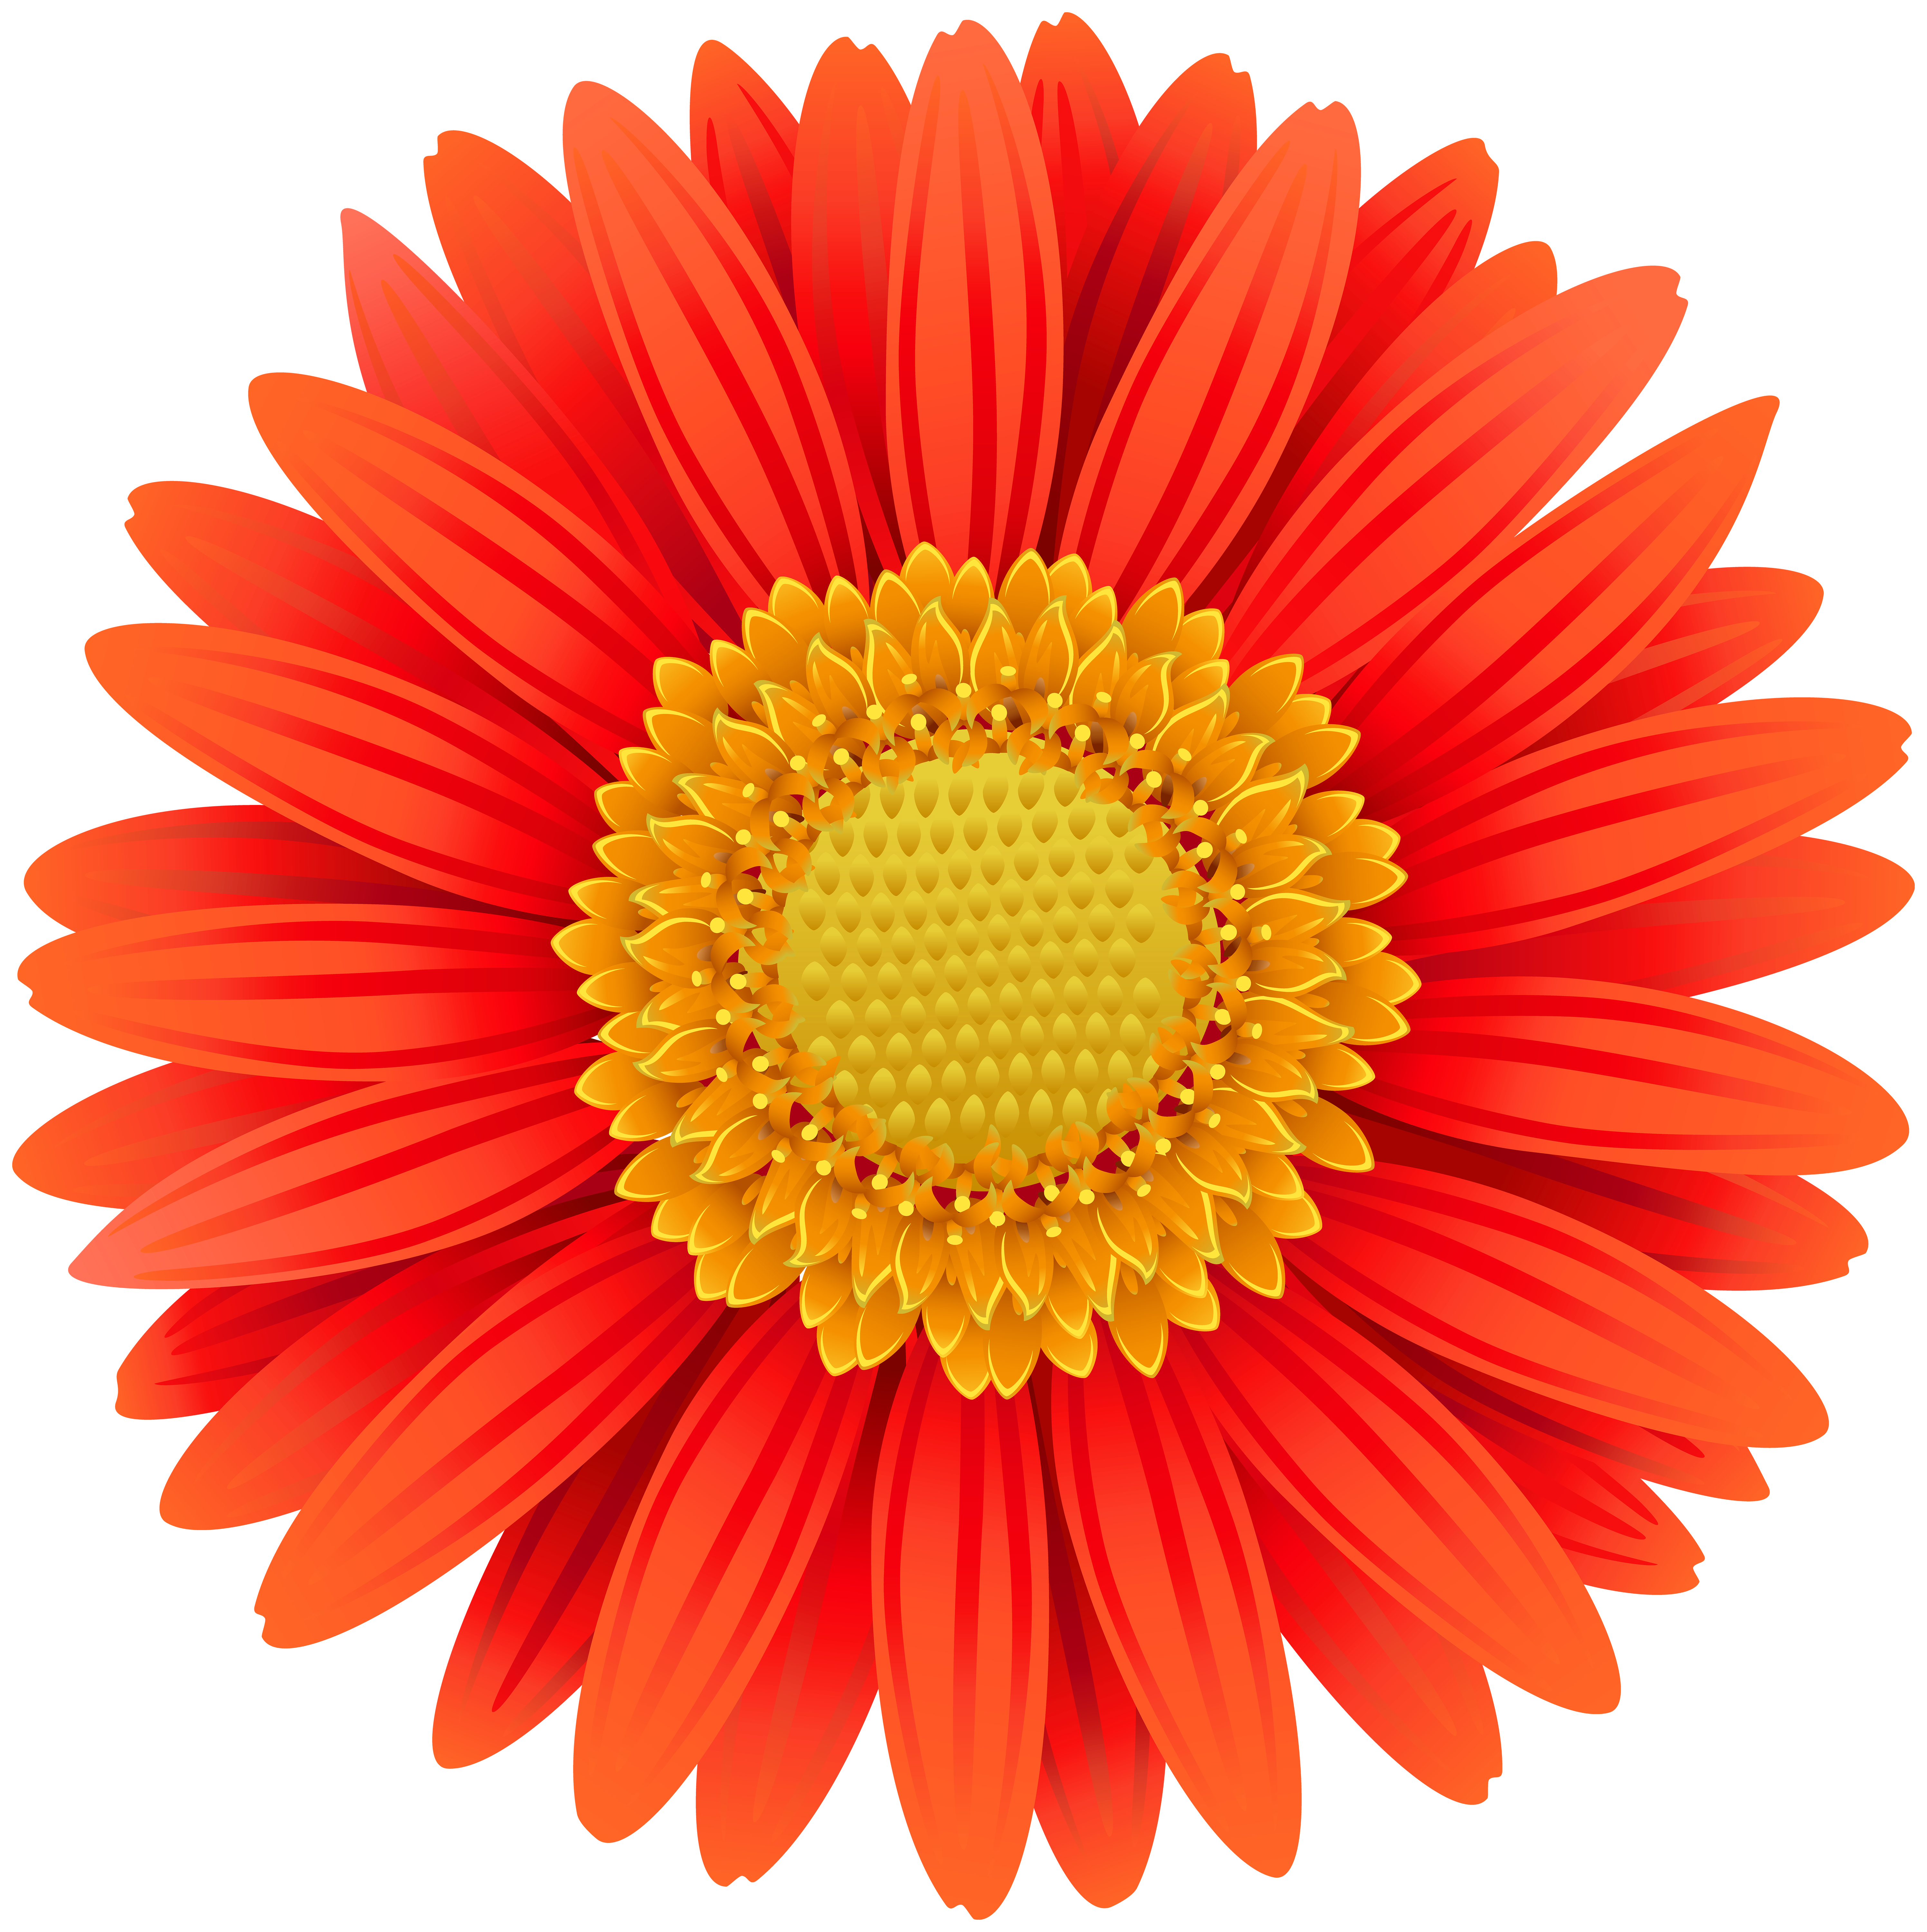 Orange Gerbera Transparent Clip Art Png Image Gallery Yopriceville High Quality Images And Transparent Png Fre Clip Art Floral Printables Clip Art Vintage